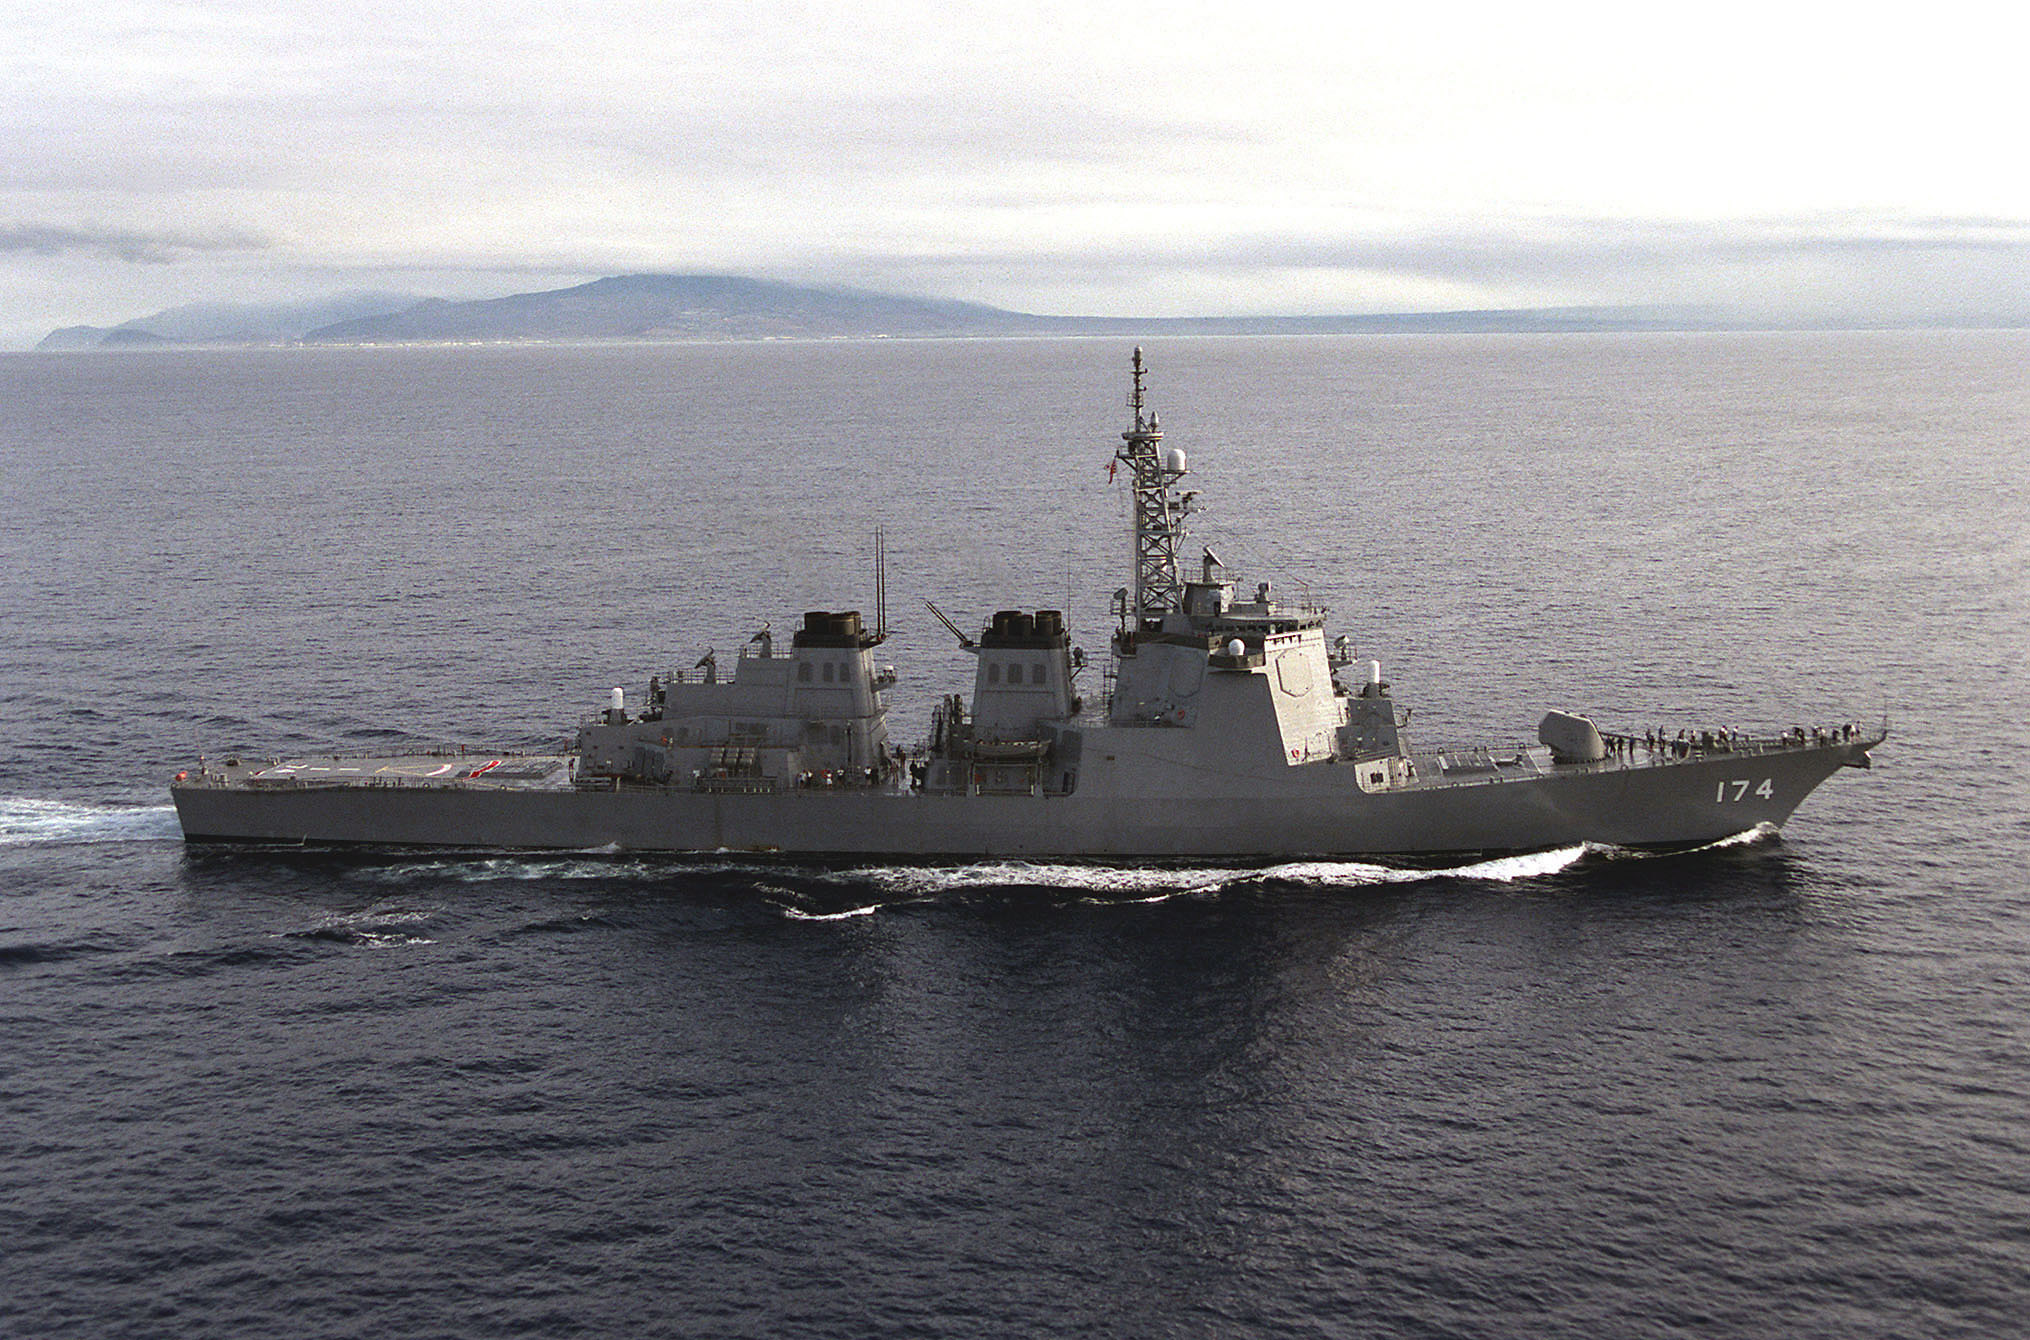 Starboard beam view of the Japanese Maritime Self Defense Force ship JDS KIRISHIMA (DDG-174) as she returns to Hawaii at the end of exercise RIMPAC '98.